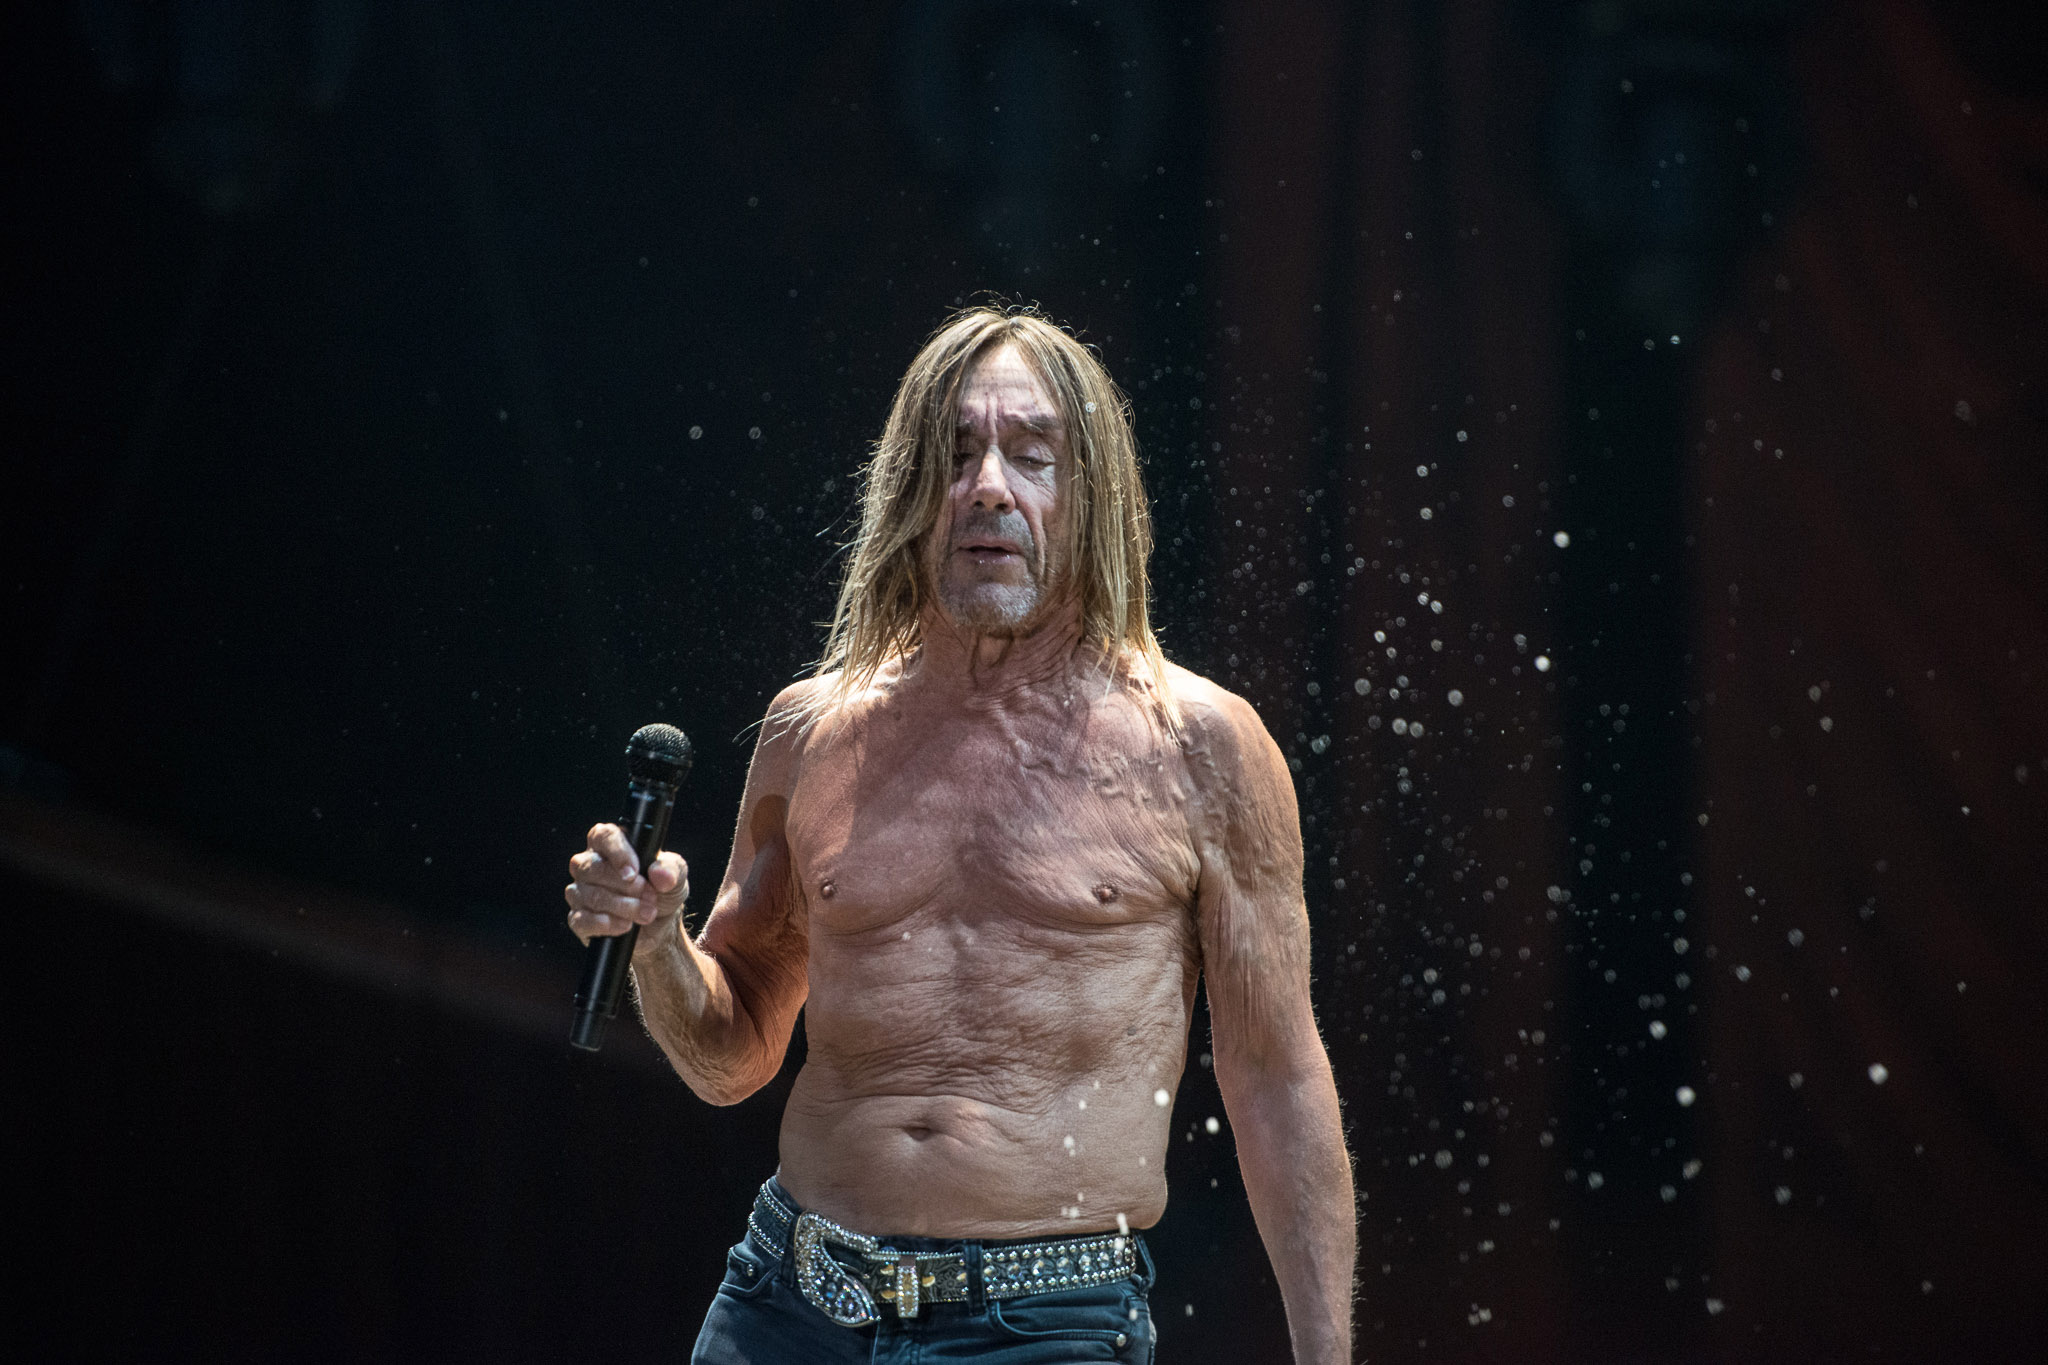 Iggy Pop pays tribute to David Bowie on 6 Music radio show